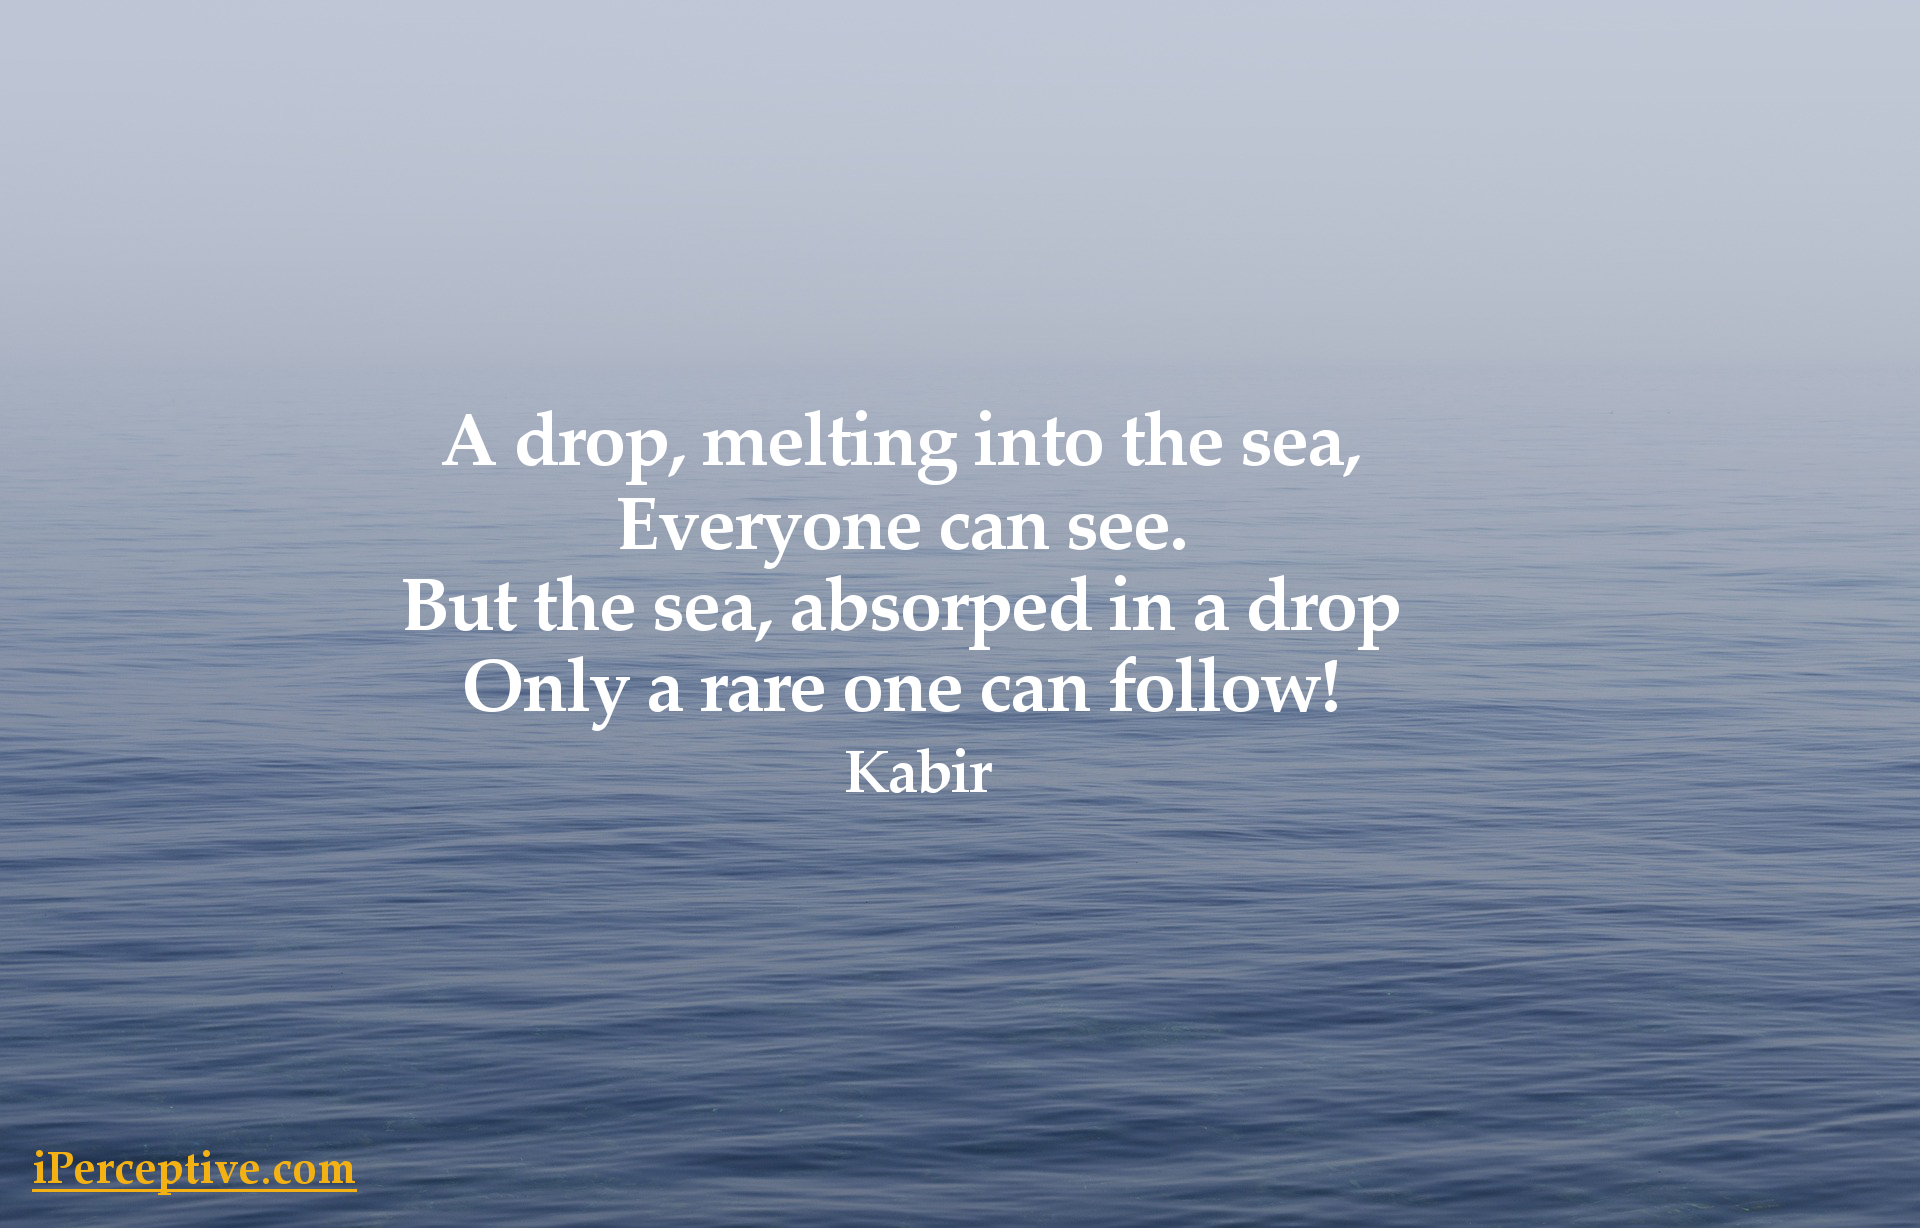 Quotes About Water Kabir Quotes Mystic Poetry  Iperceptive